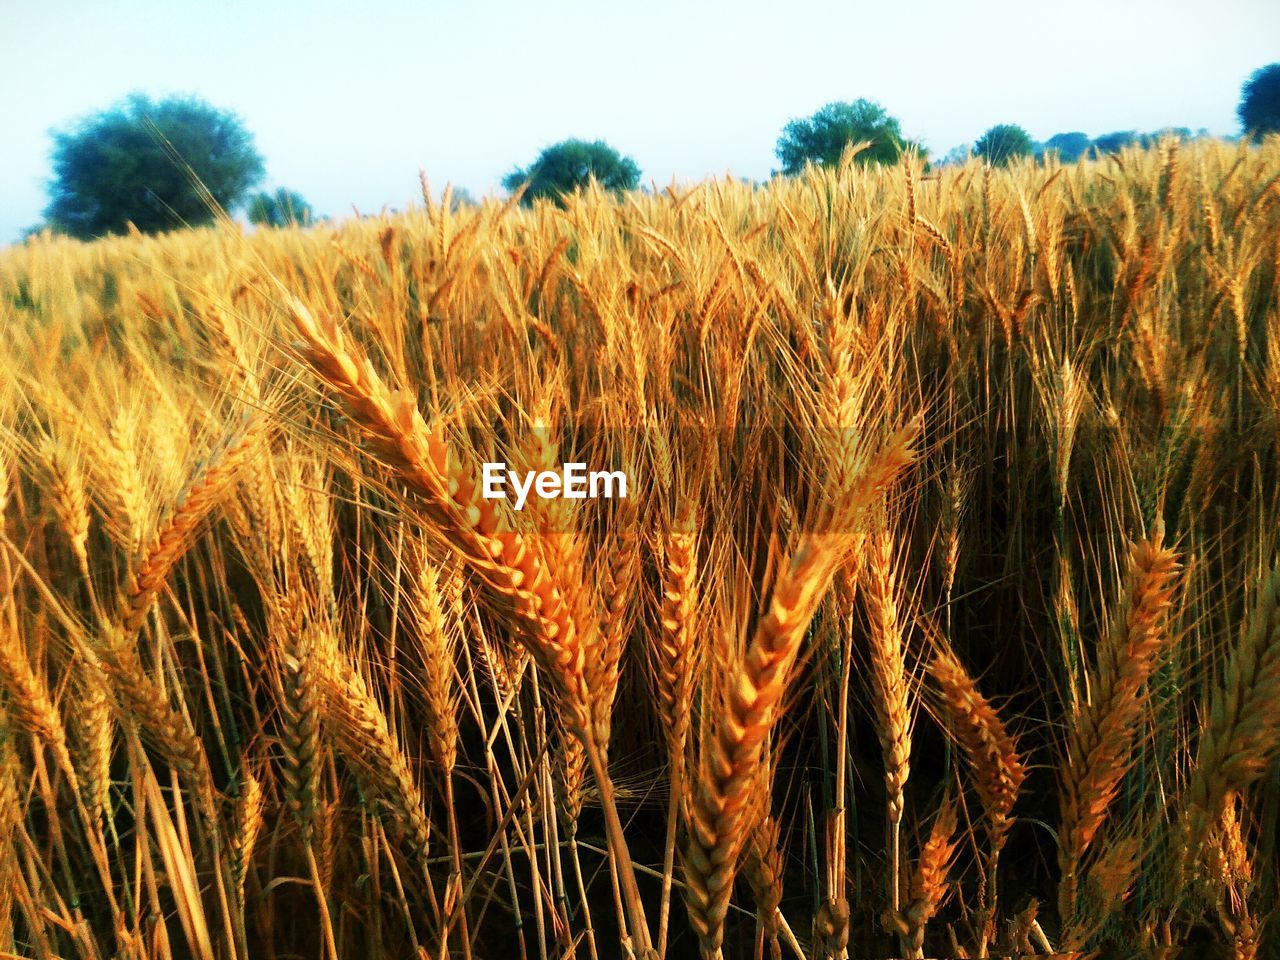 crop, rural scene, agriculture, landscape, cereal plant, plant, growth, land, farm, field, sky, nature, wheat, environment, tranquility, beauty in nature, day, no people, scenics - nature, close-up, outdoors, stalk, plantation